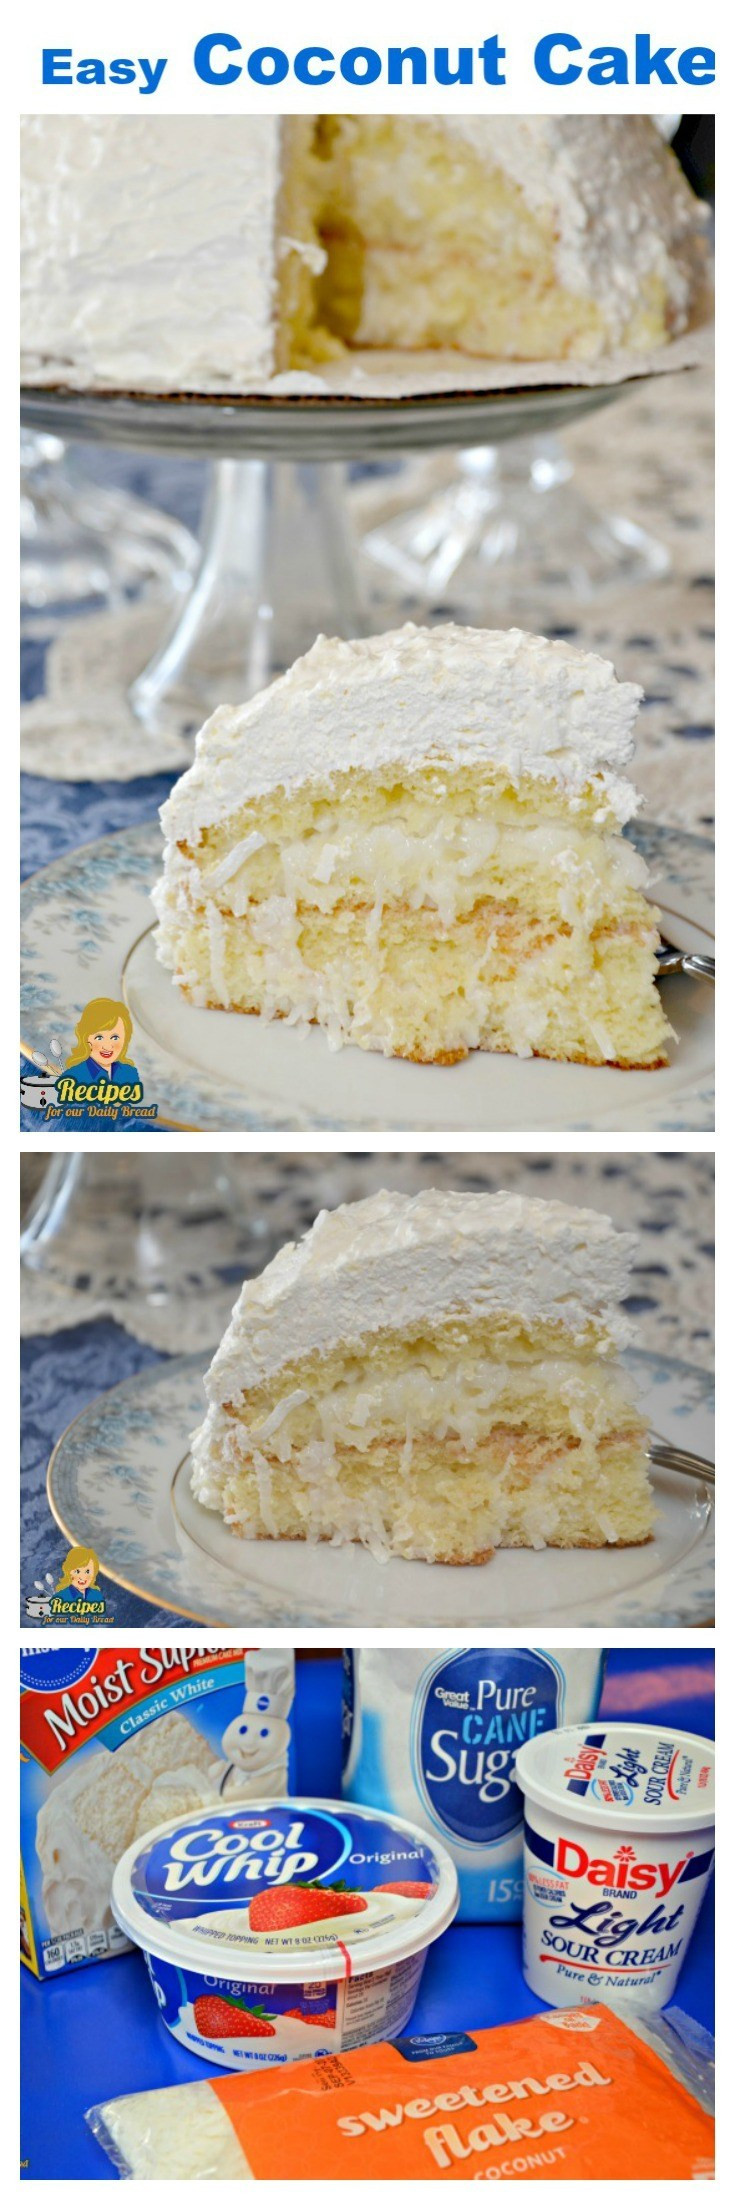 Easy Coconut Cake  Easy Coconut Cake using 5 simple ingre nts